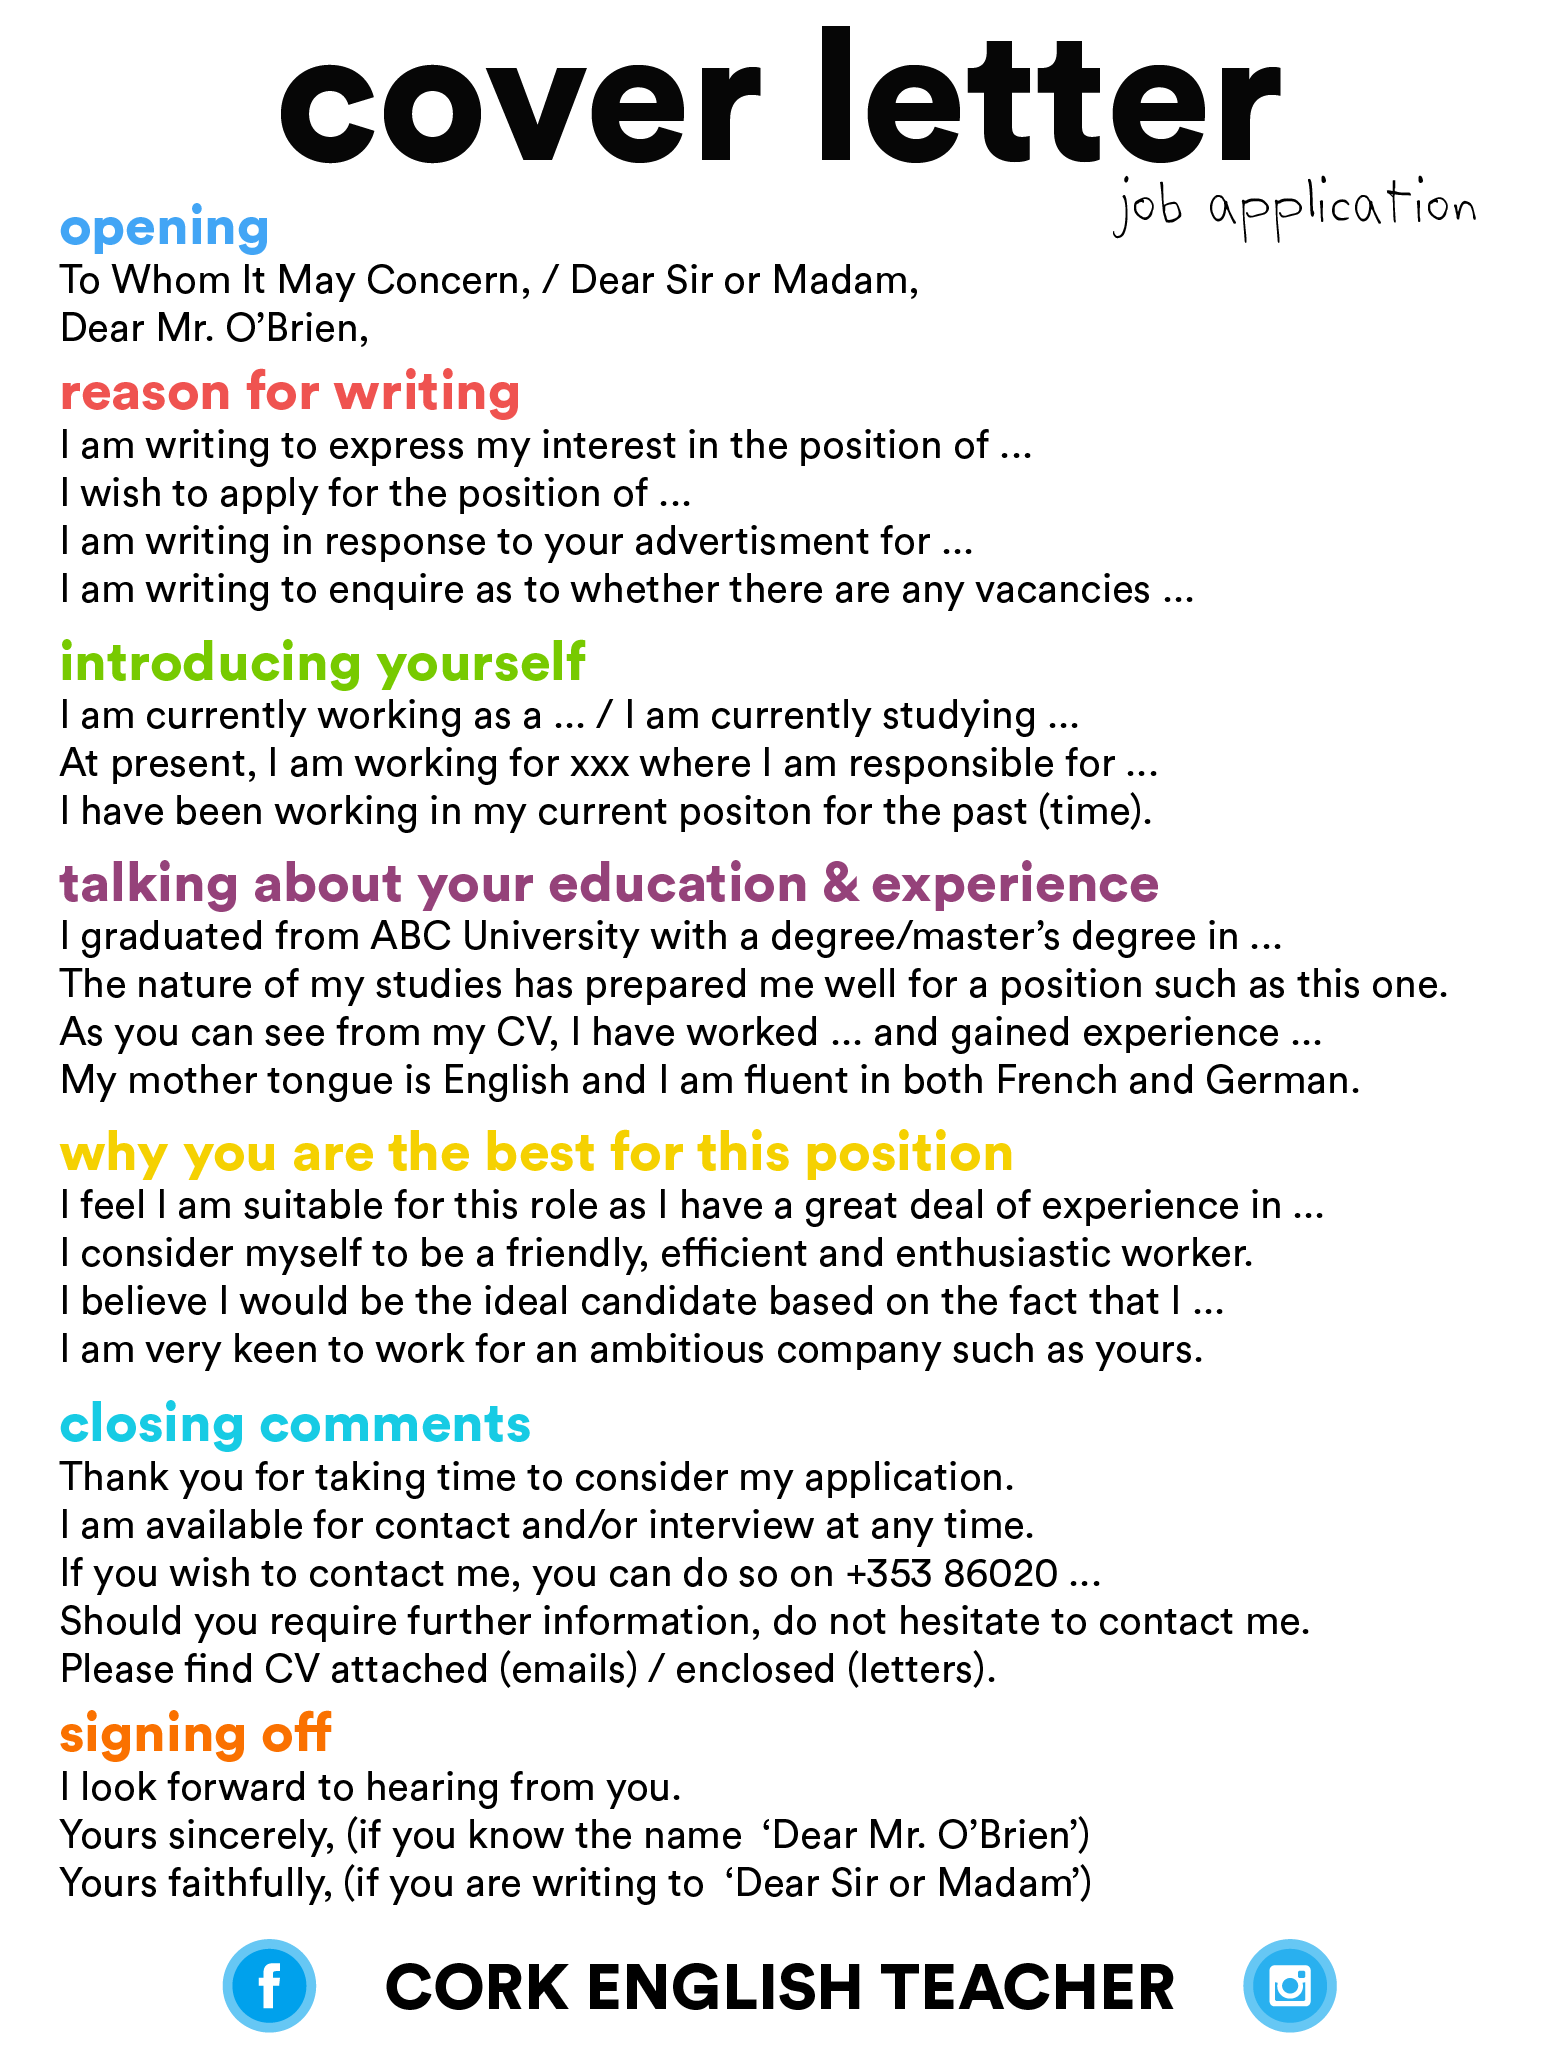 cover letter - job application | Resume | Pinterest | Cover ...